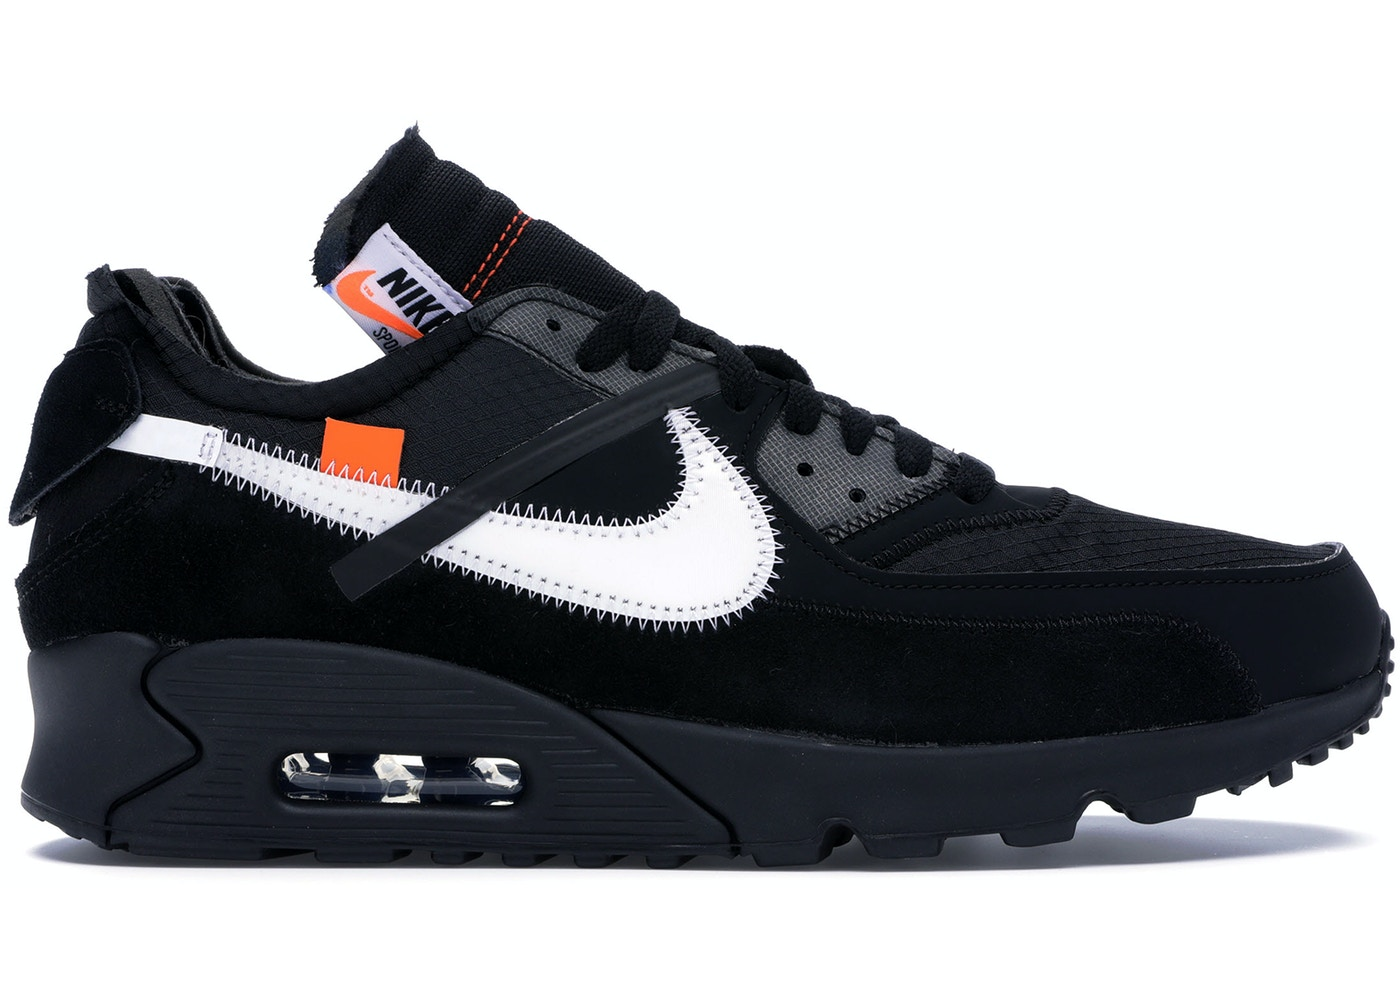 9a4e9d9a0aabf9 Air Max 90 OFF-WHITE Black